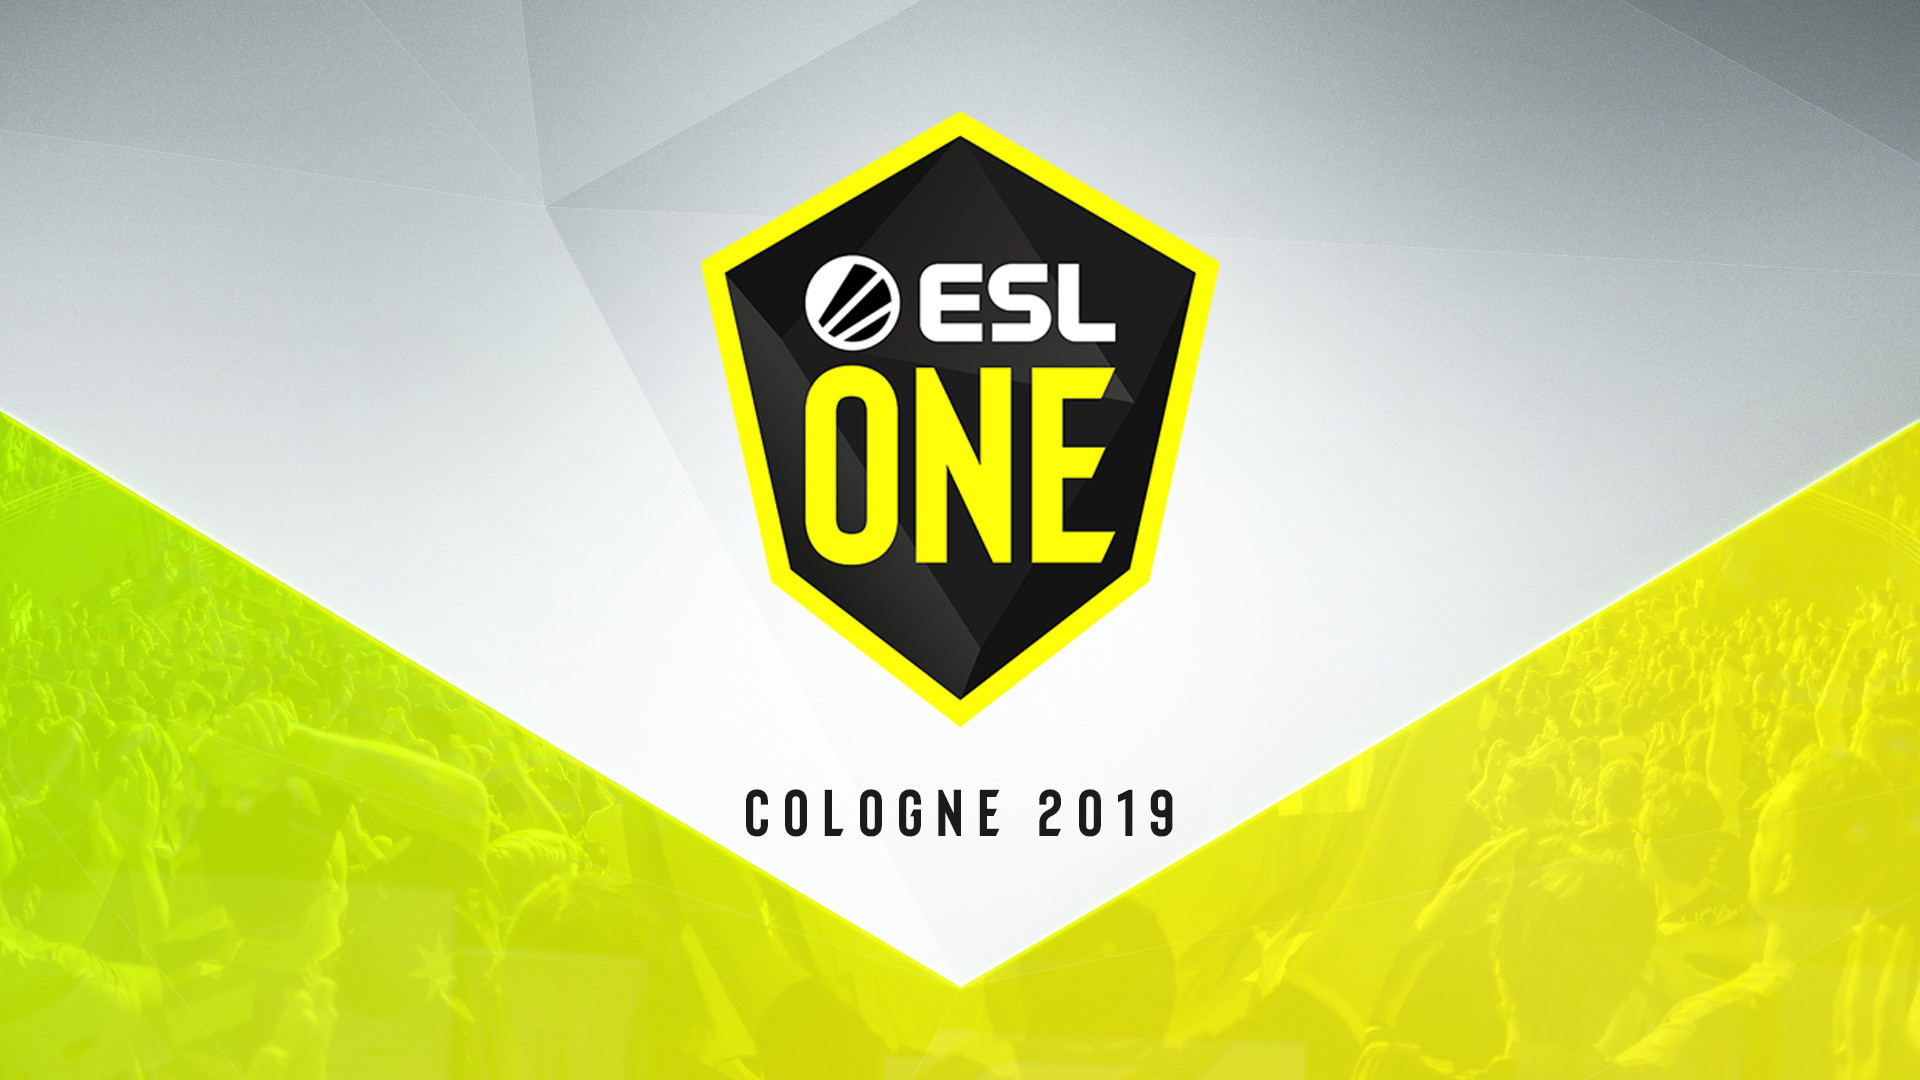 ESL One Cologne 2019 : Liquid l'emporte sur Vitality